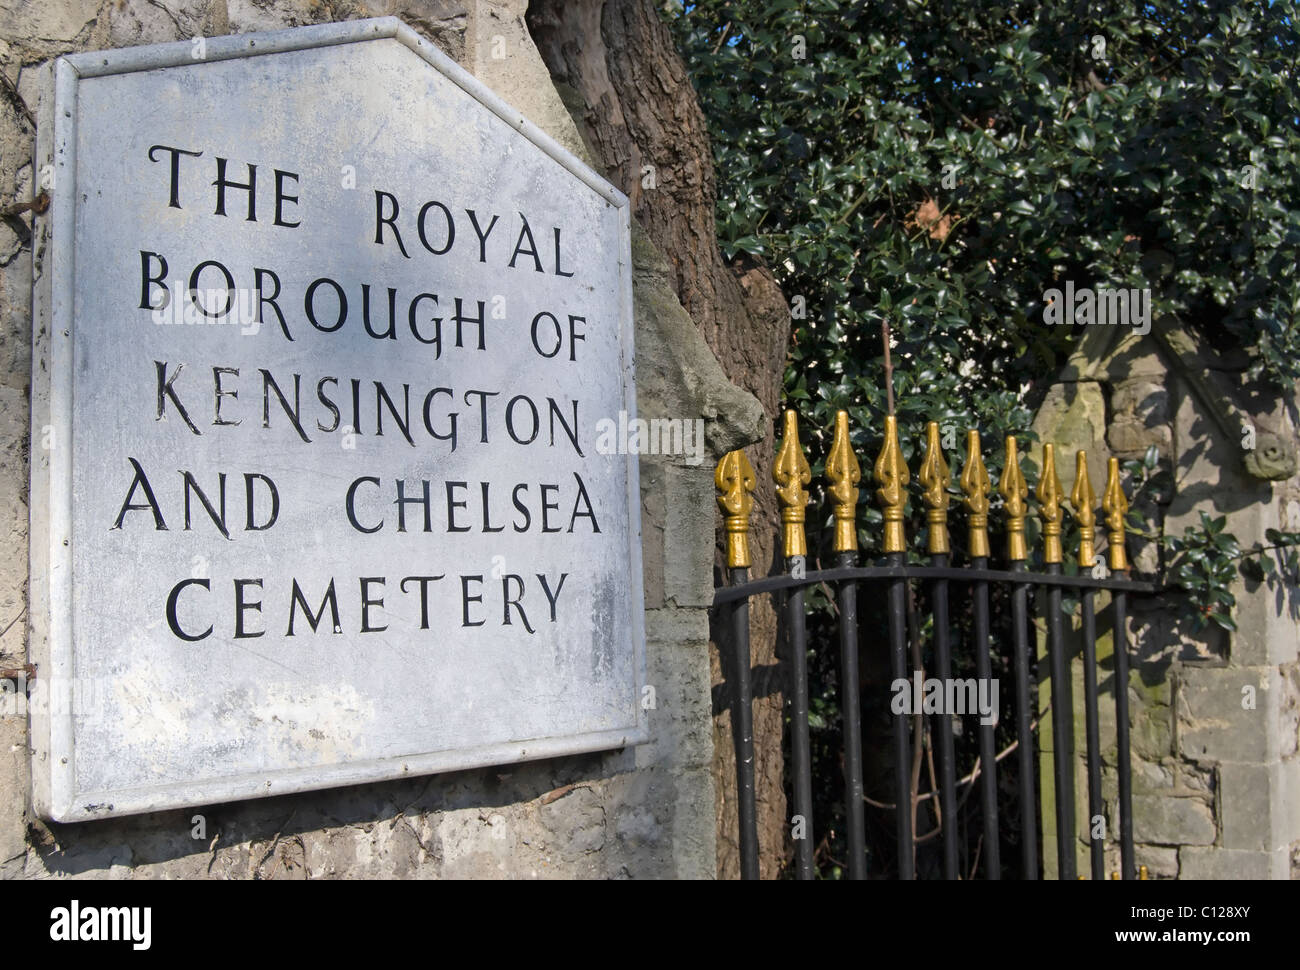 entrance sign for the royal borough of kensington and chelsea cemetery, hanwell, west london, england - Stock Image